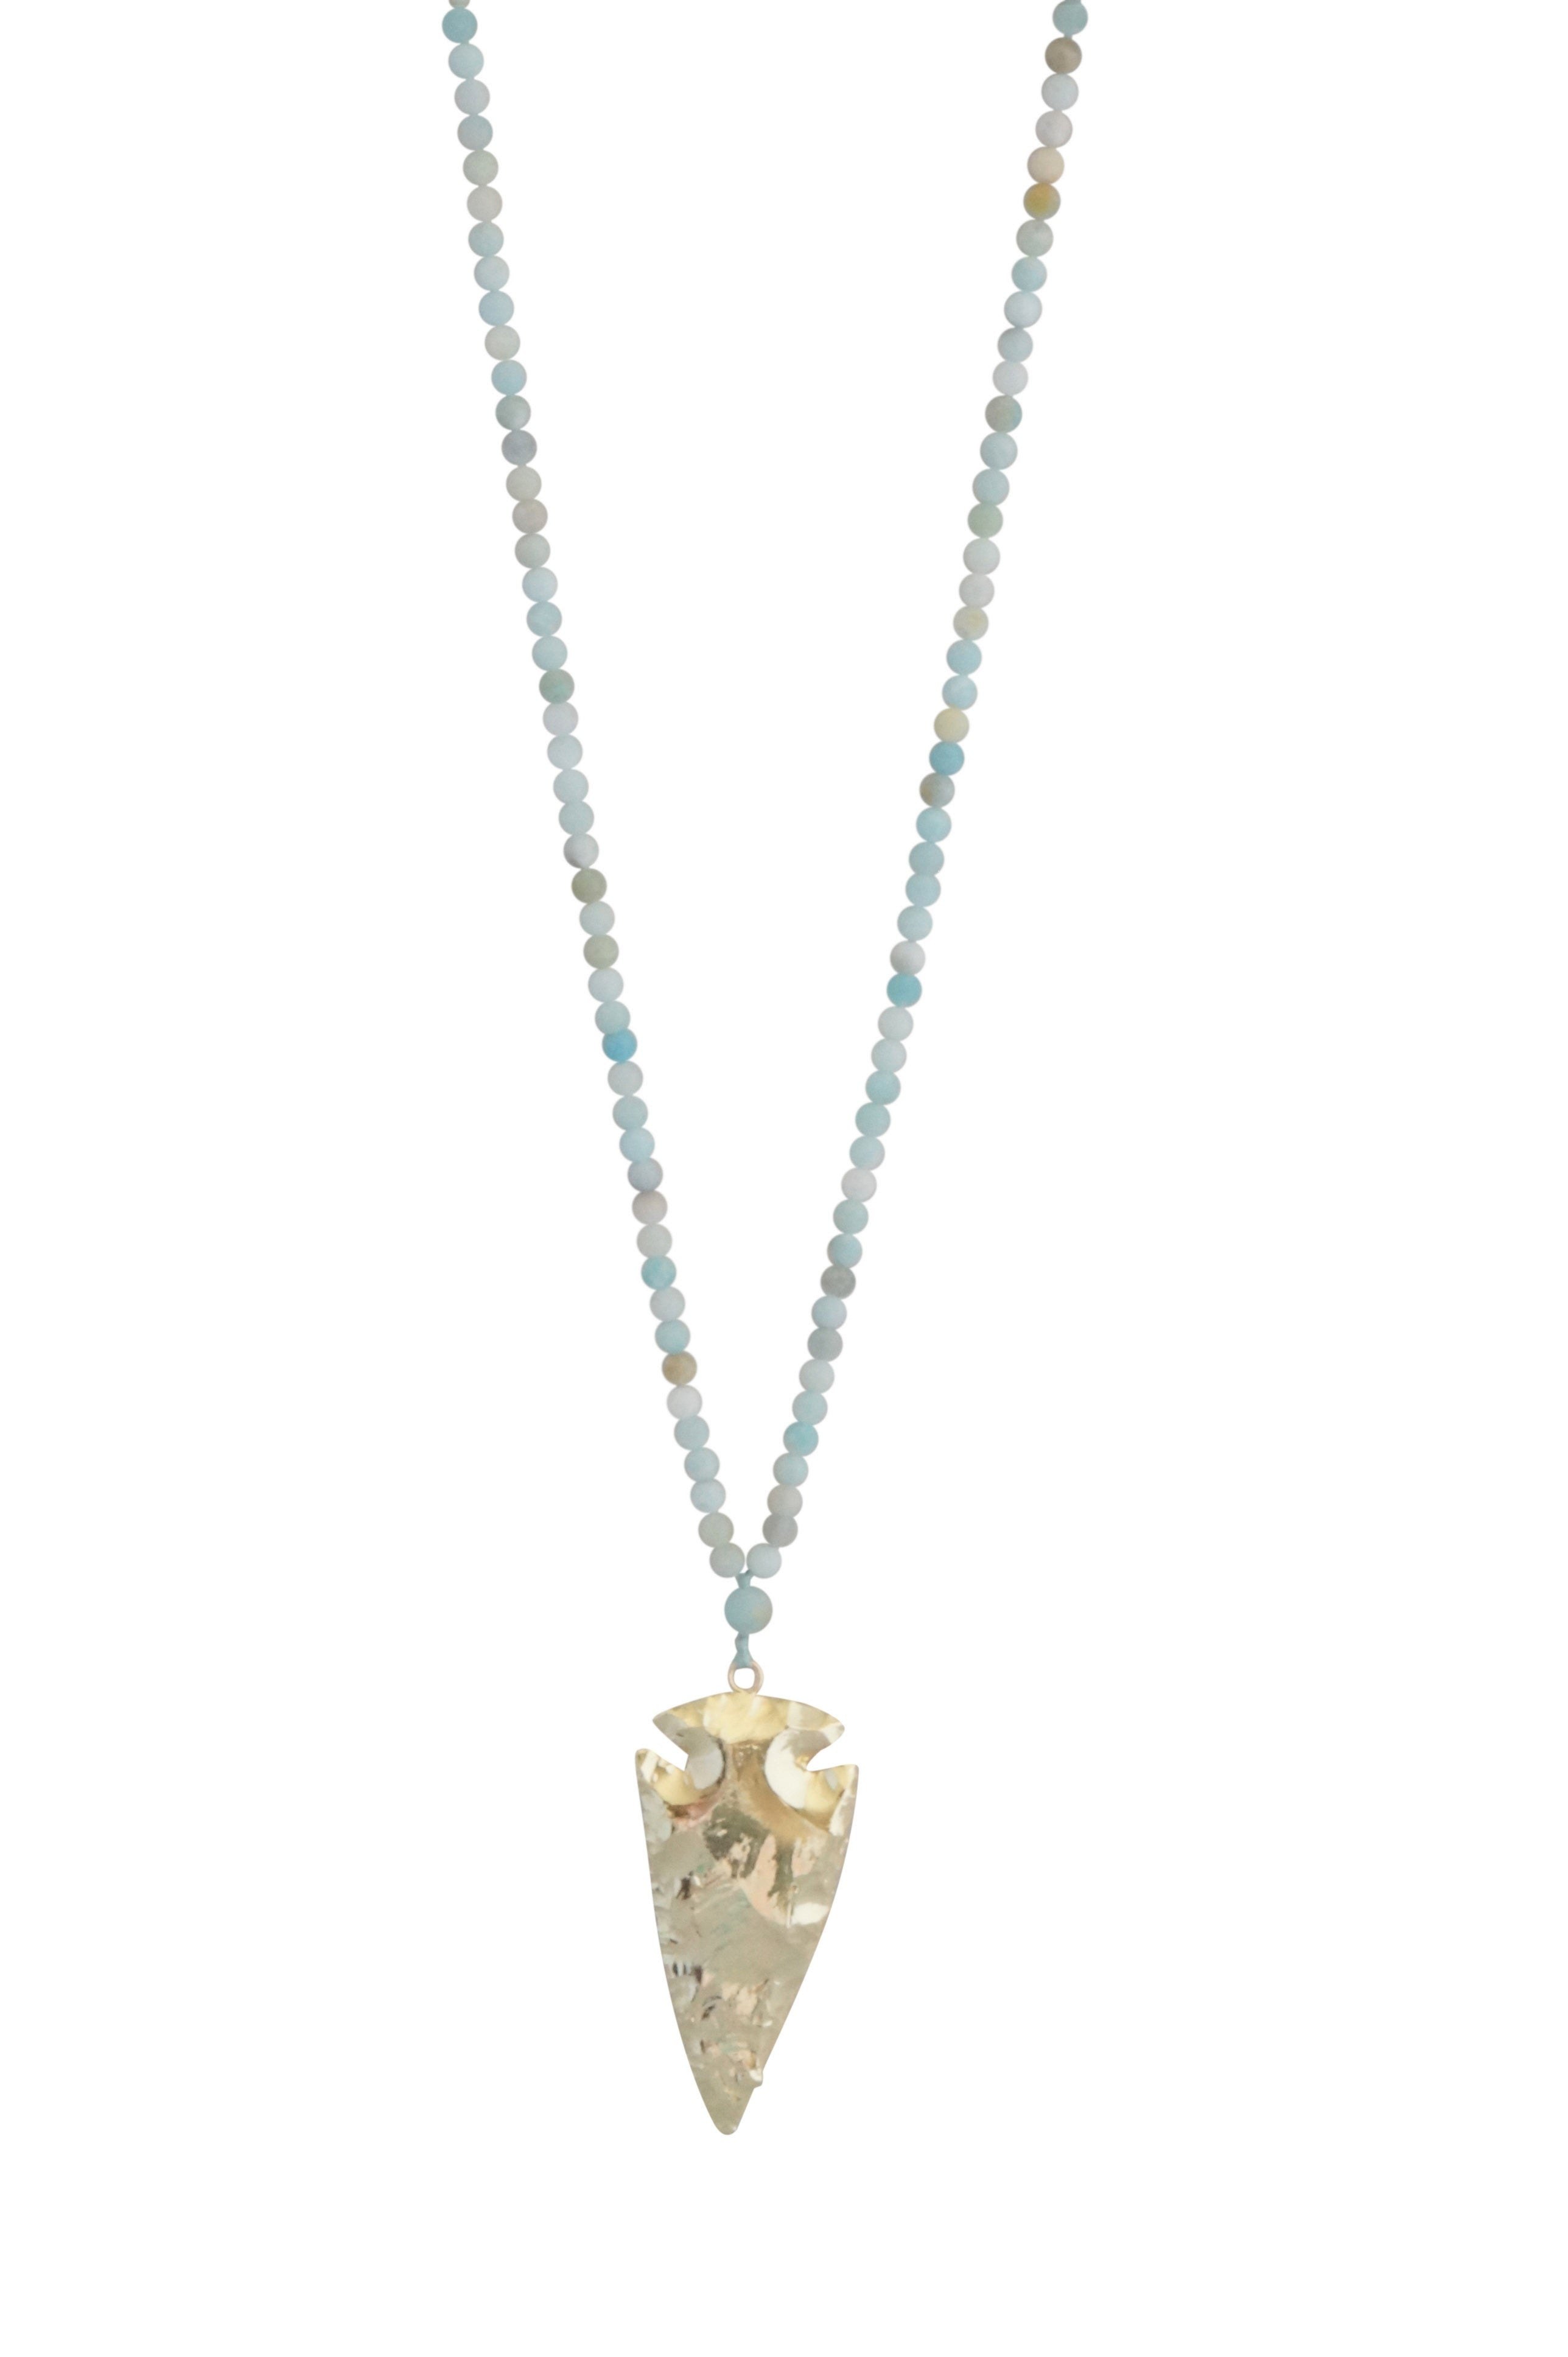 Spirit Necklace - Carolyn Hearn Designs